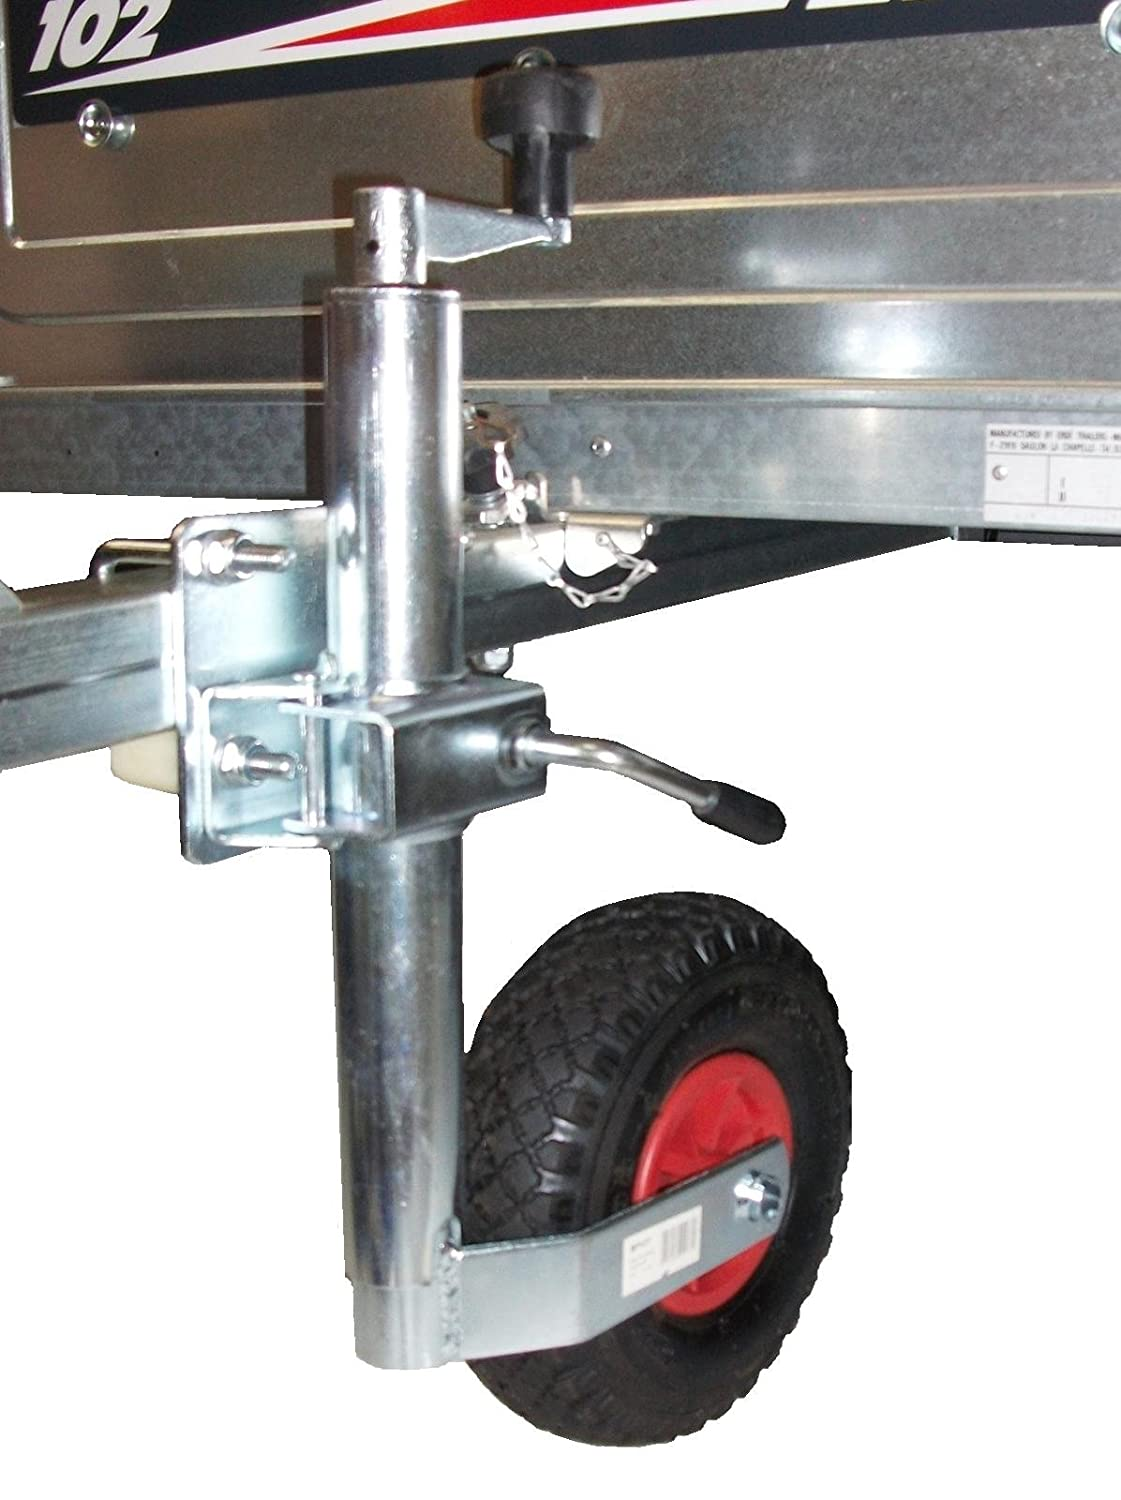 Trailer caravan Pneumatic Jockey Wheel 48mm and split clamp with FIXING KIT Pt no. LMX1595 Leisure Mart